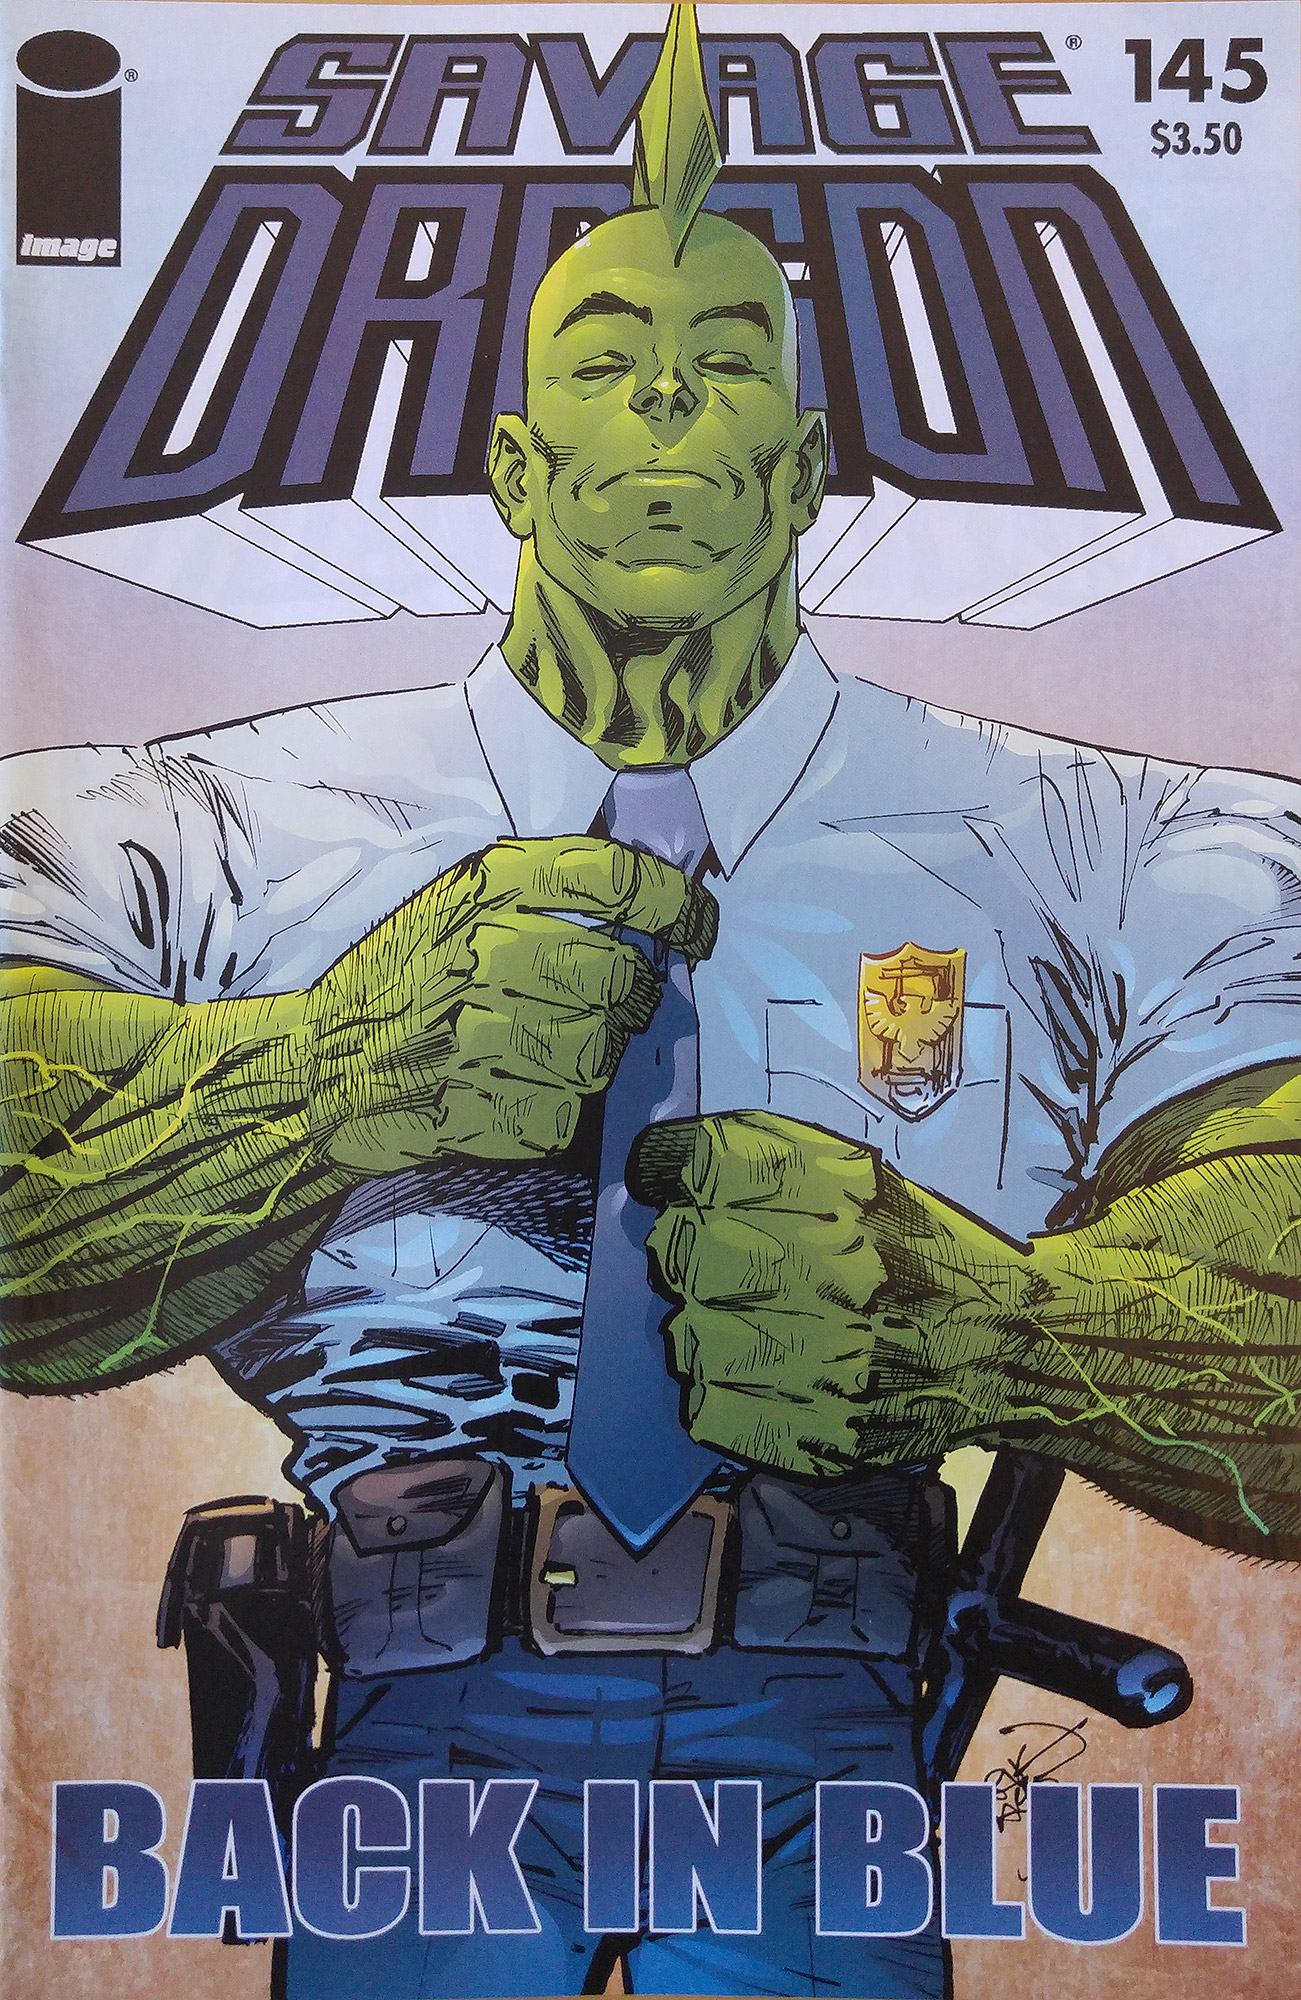 Cover Savage Dragon Vol.2 #145